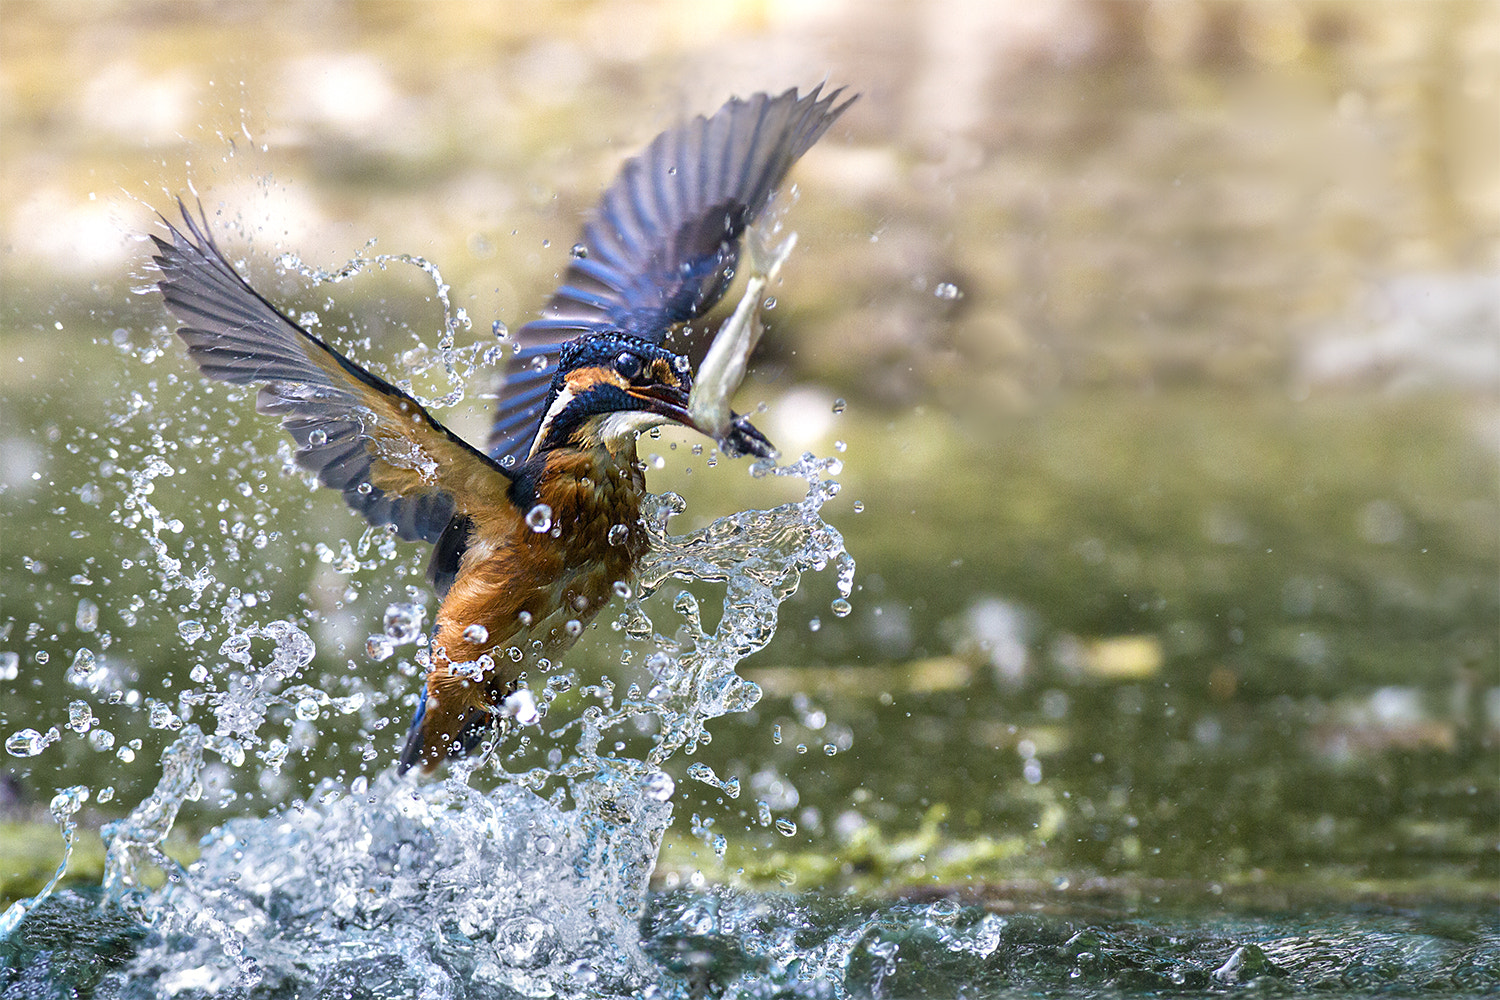 Photograph Angel water's catch by Marco Redaelli on 500px